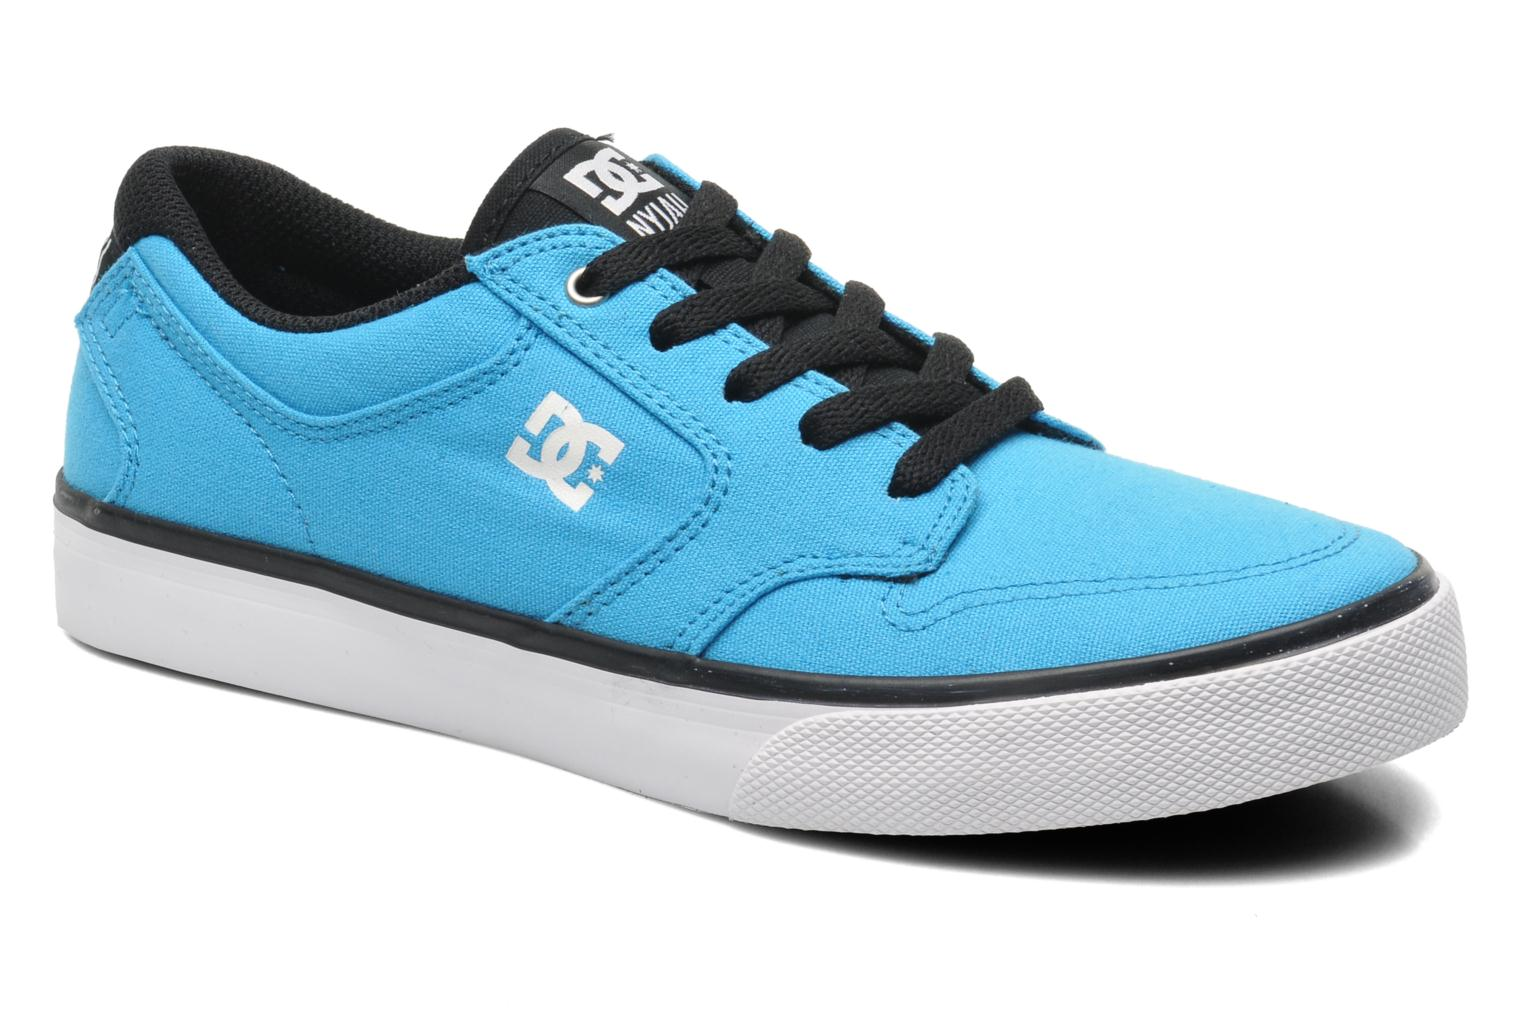 NYJAH VULC TX by DC Shoes